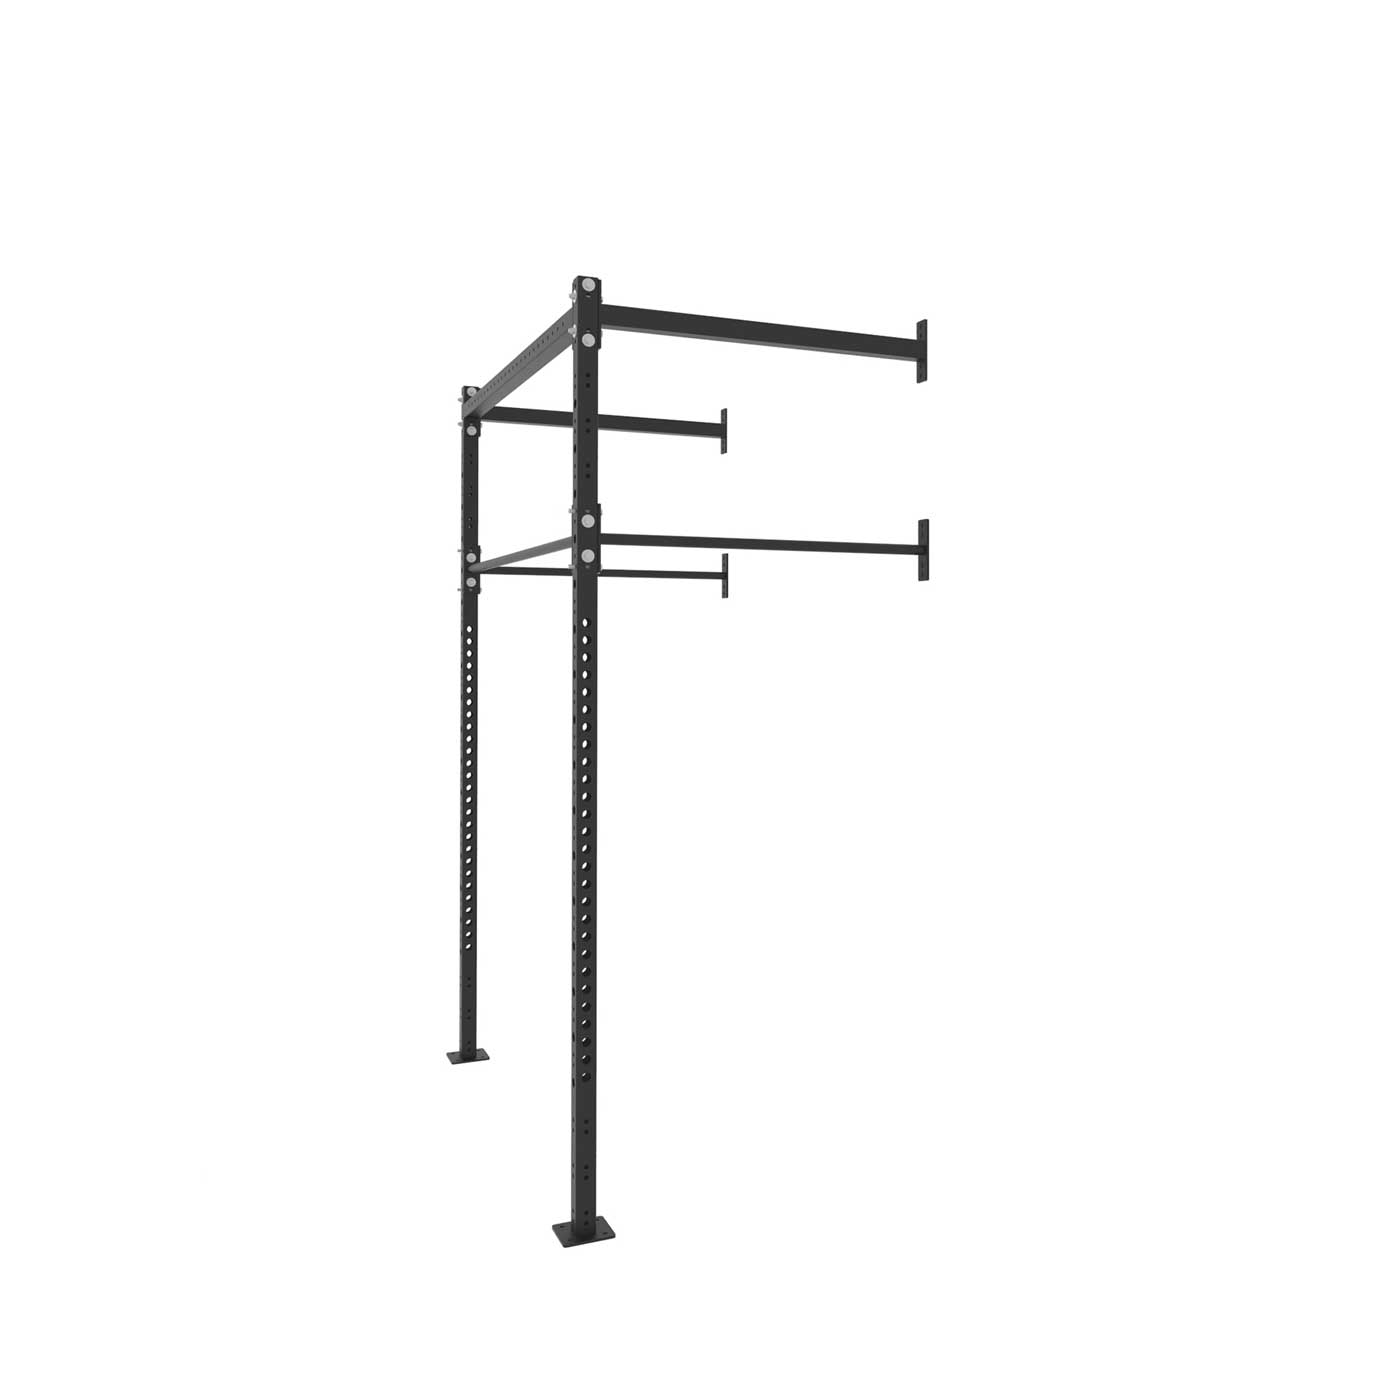 Freestanding Add-on - 4FT